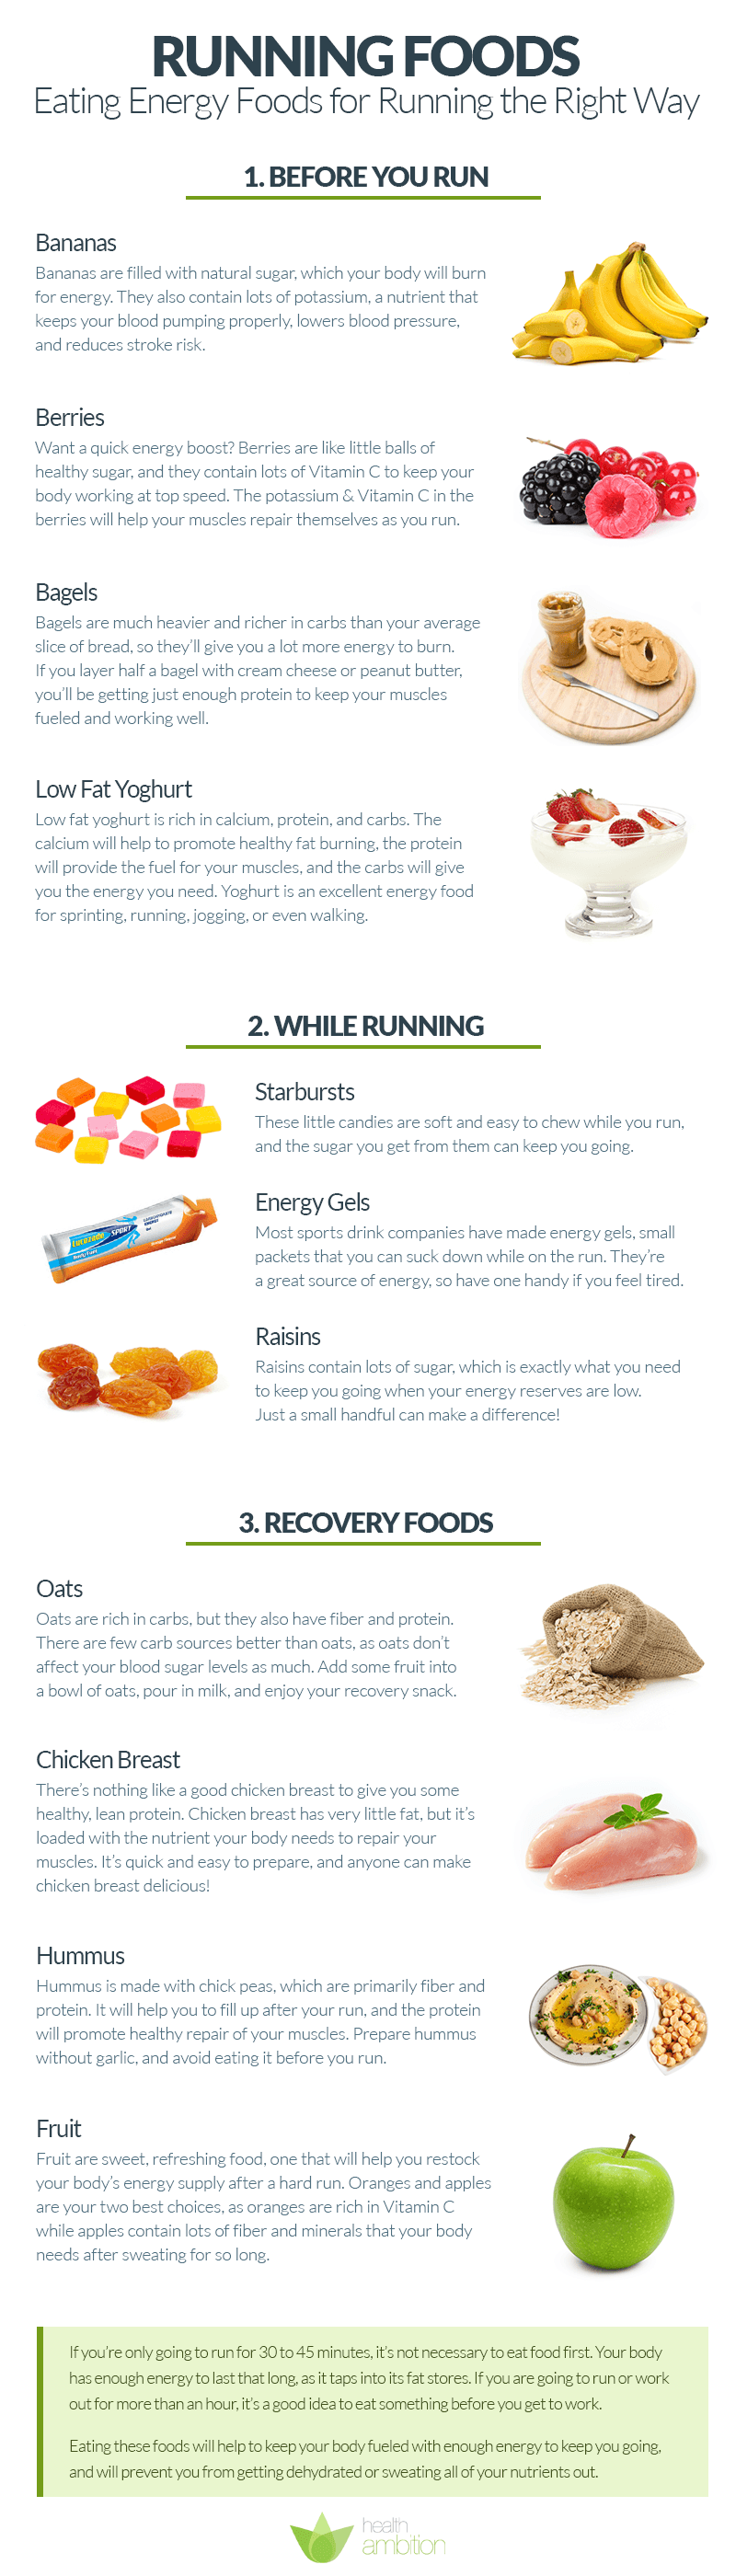 Running Foods – Eating Energy Foods for Running the Right Way